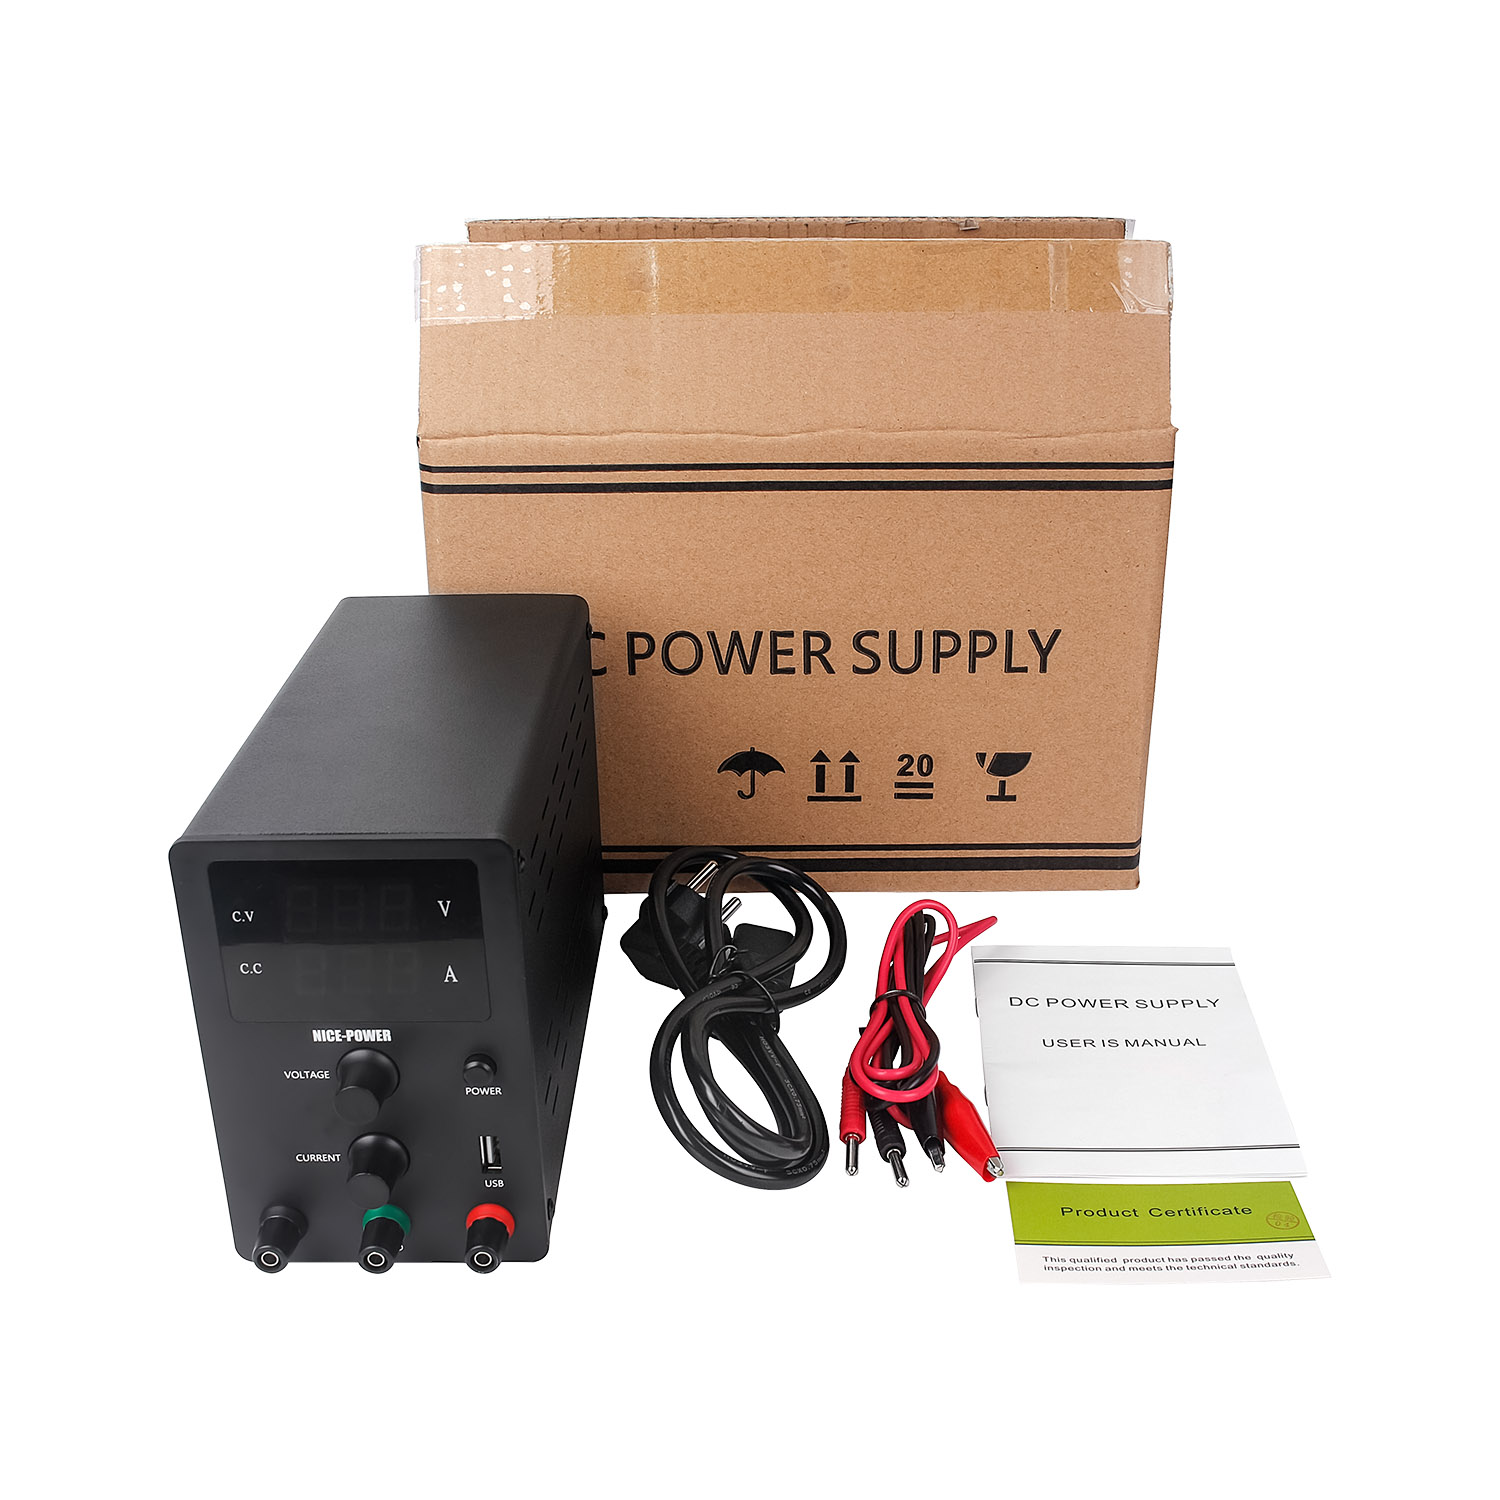 Nice Power R-SPS605 Black 60V 5A Adjustable New Design OEM Variable Dc Power Supply Laboratory Bench power supply switching